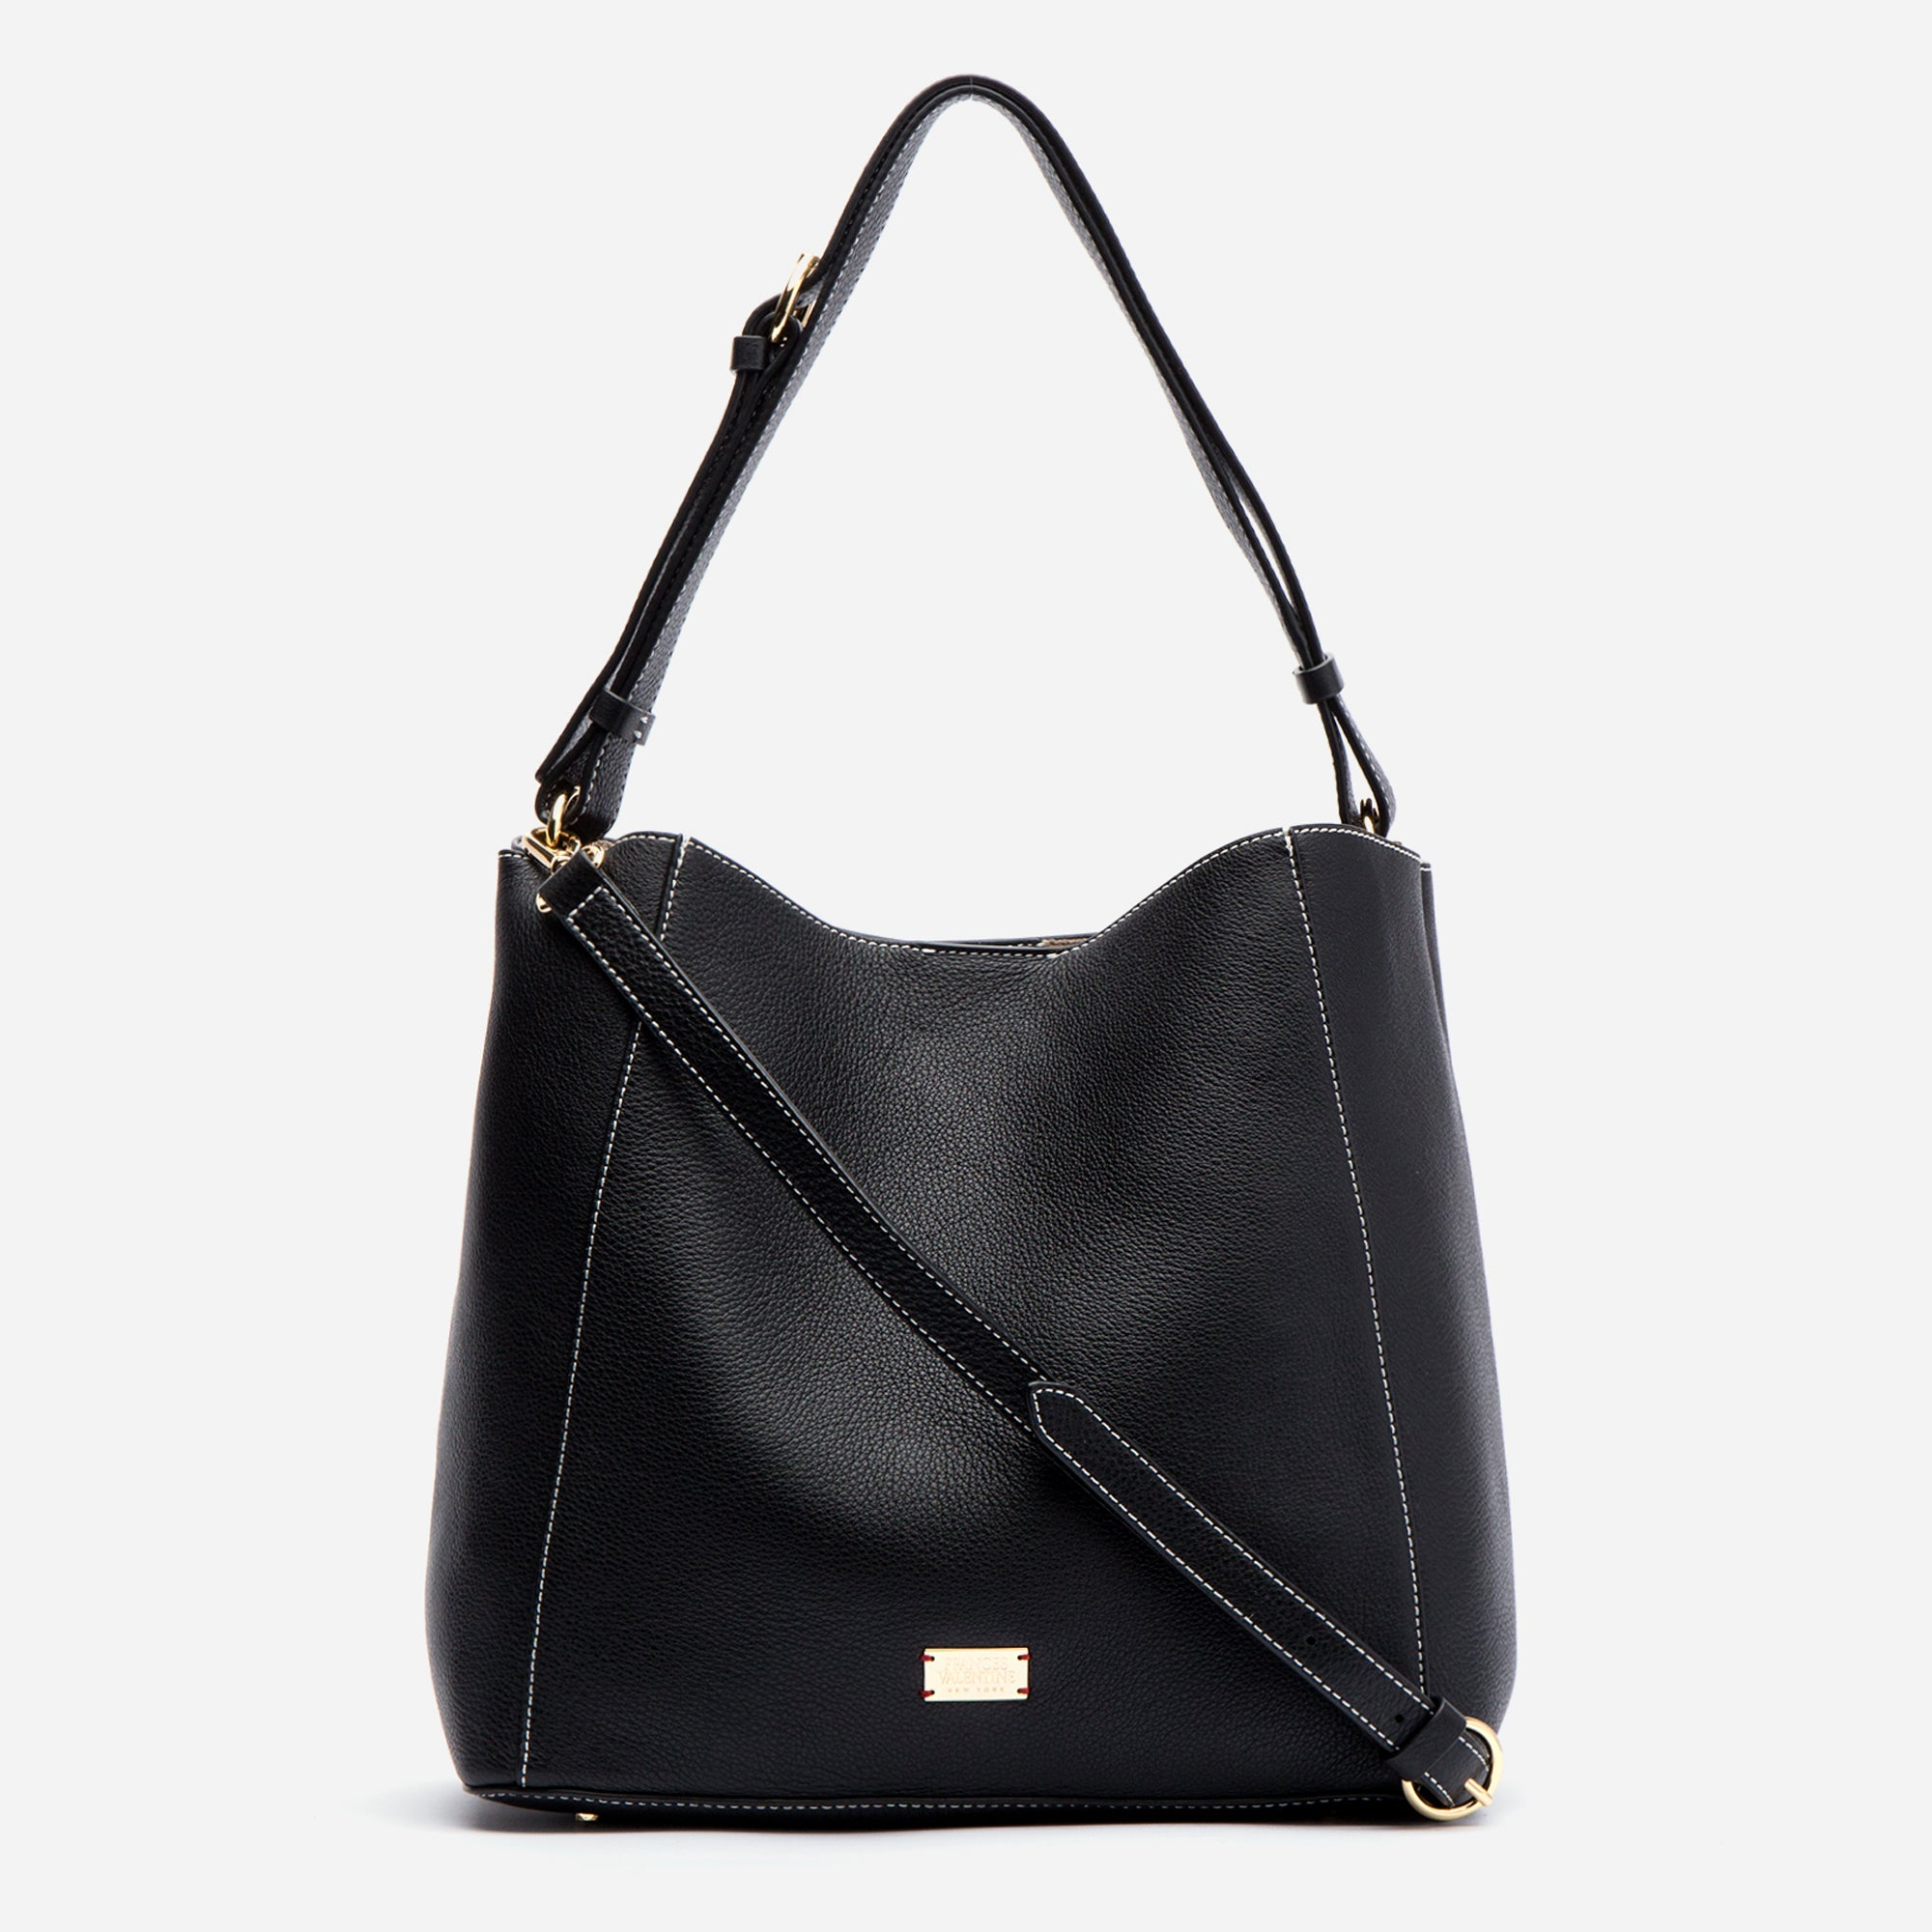 Medium June Hobo Leather Black - Frances Valentine